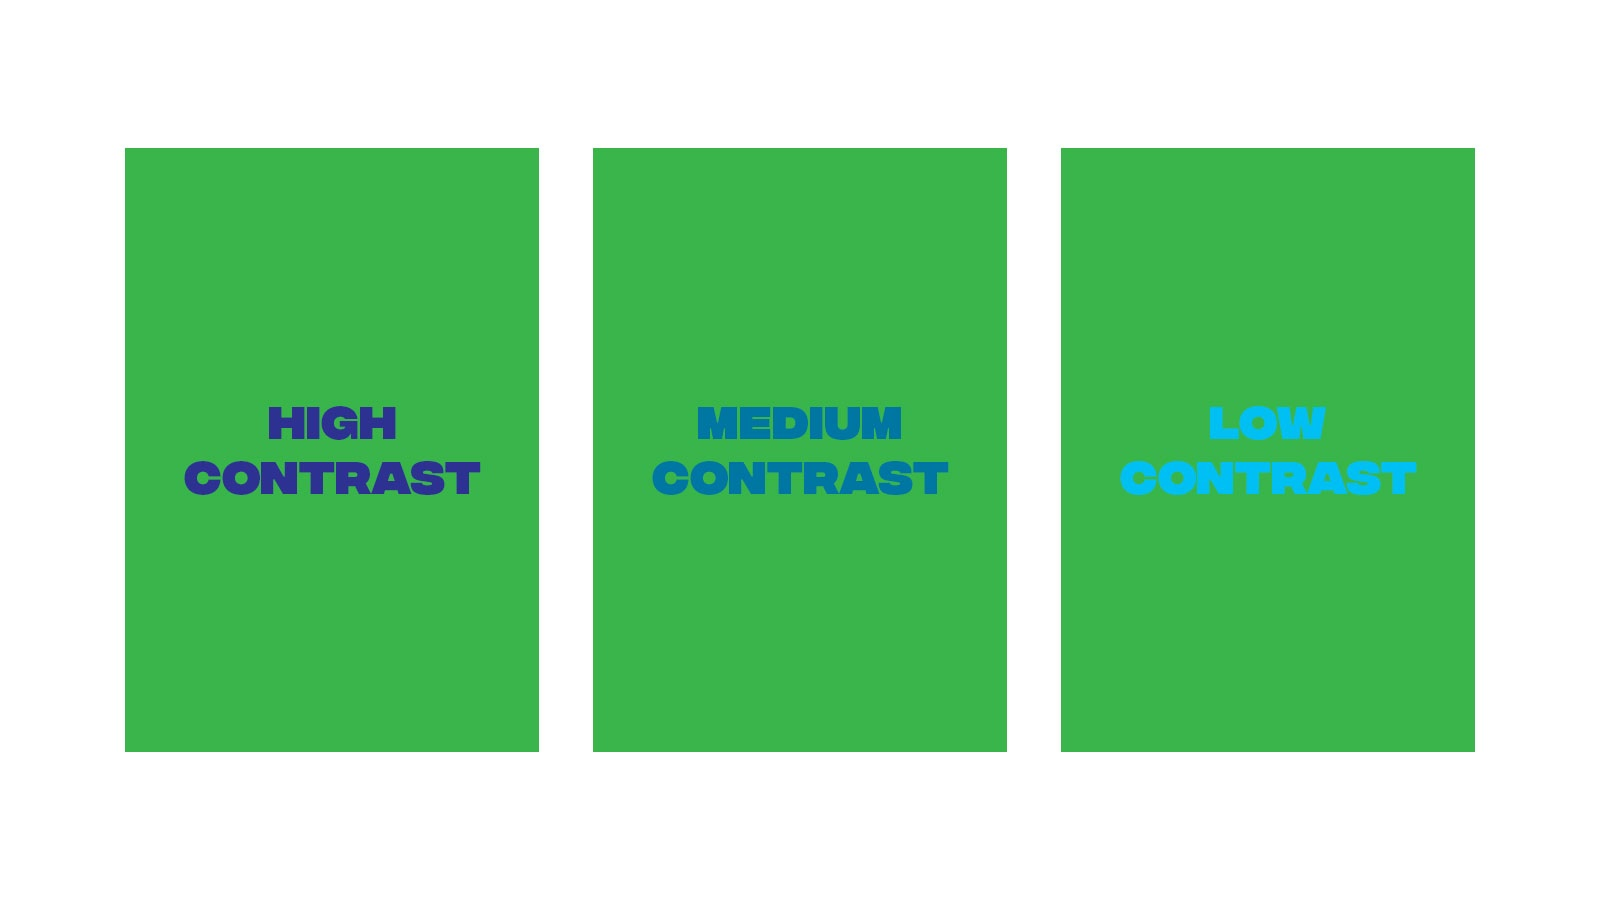 3 green backgrounds with varying blue foreground text to show high vs medium vs low contrast